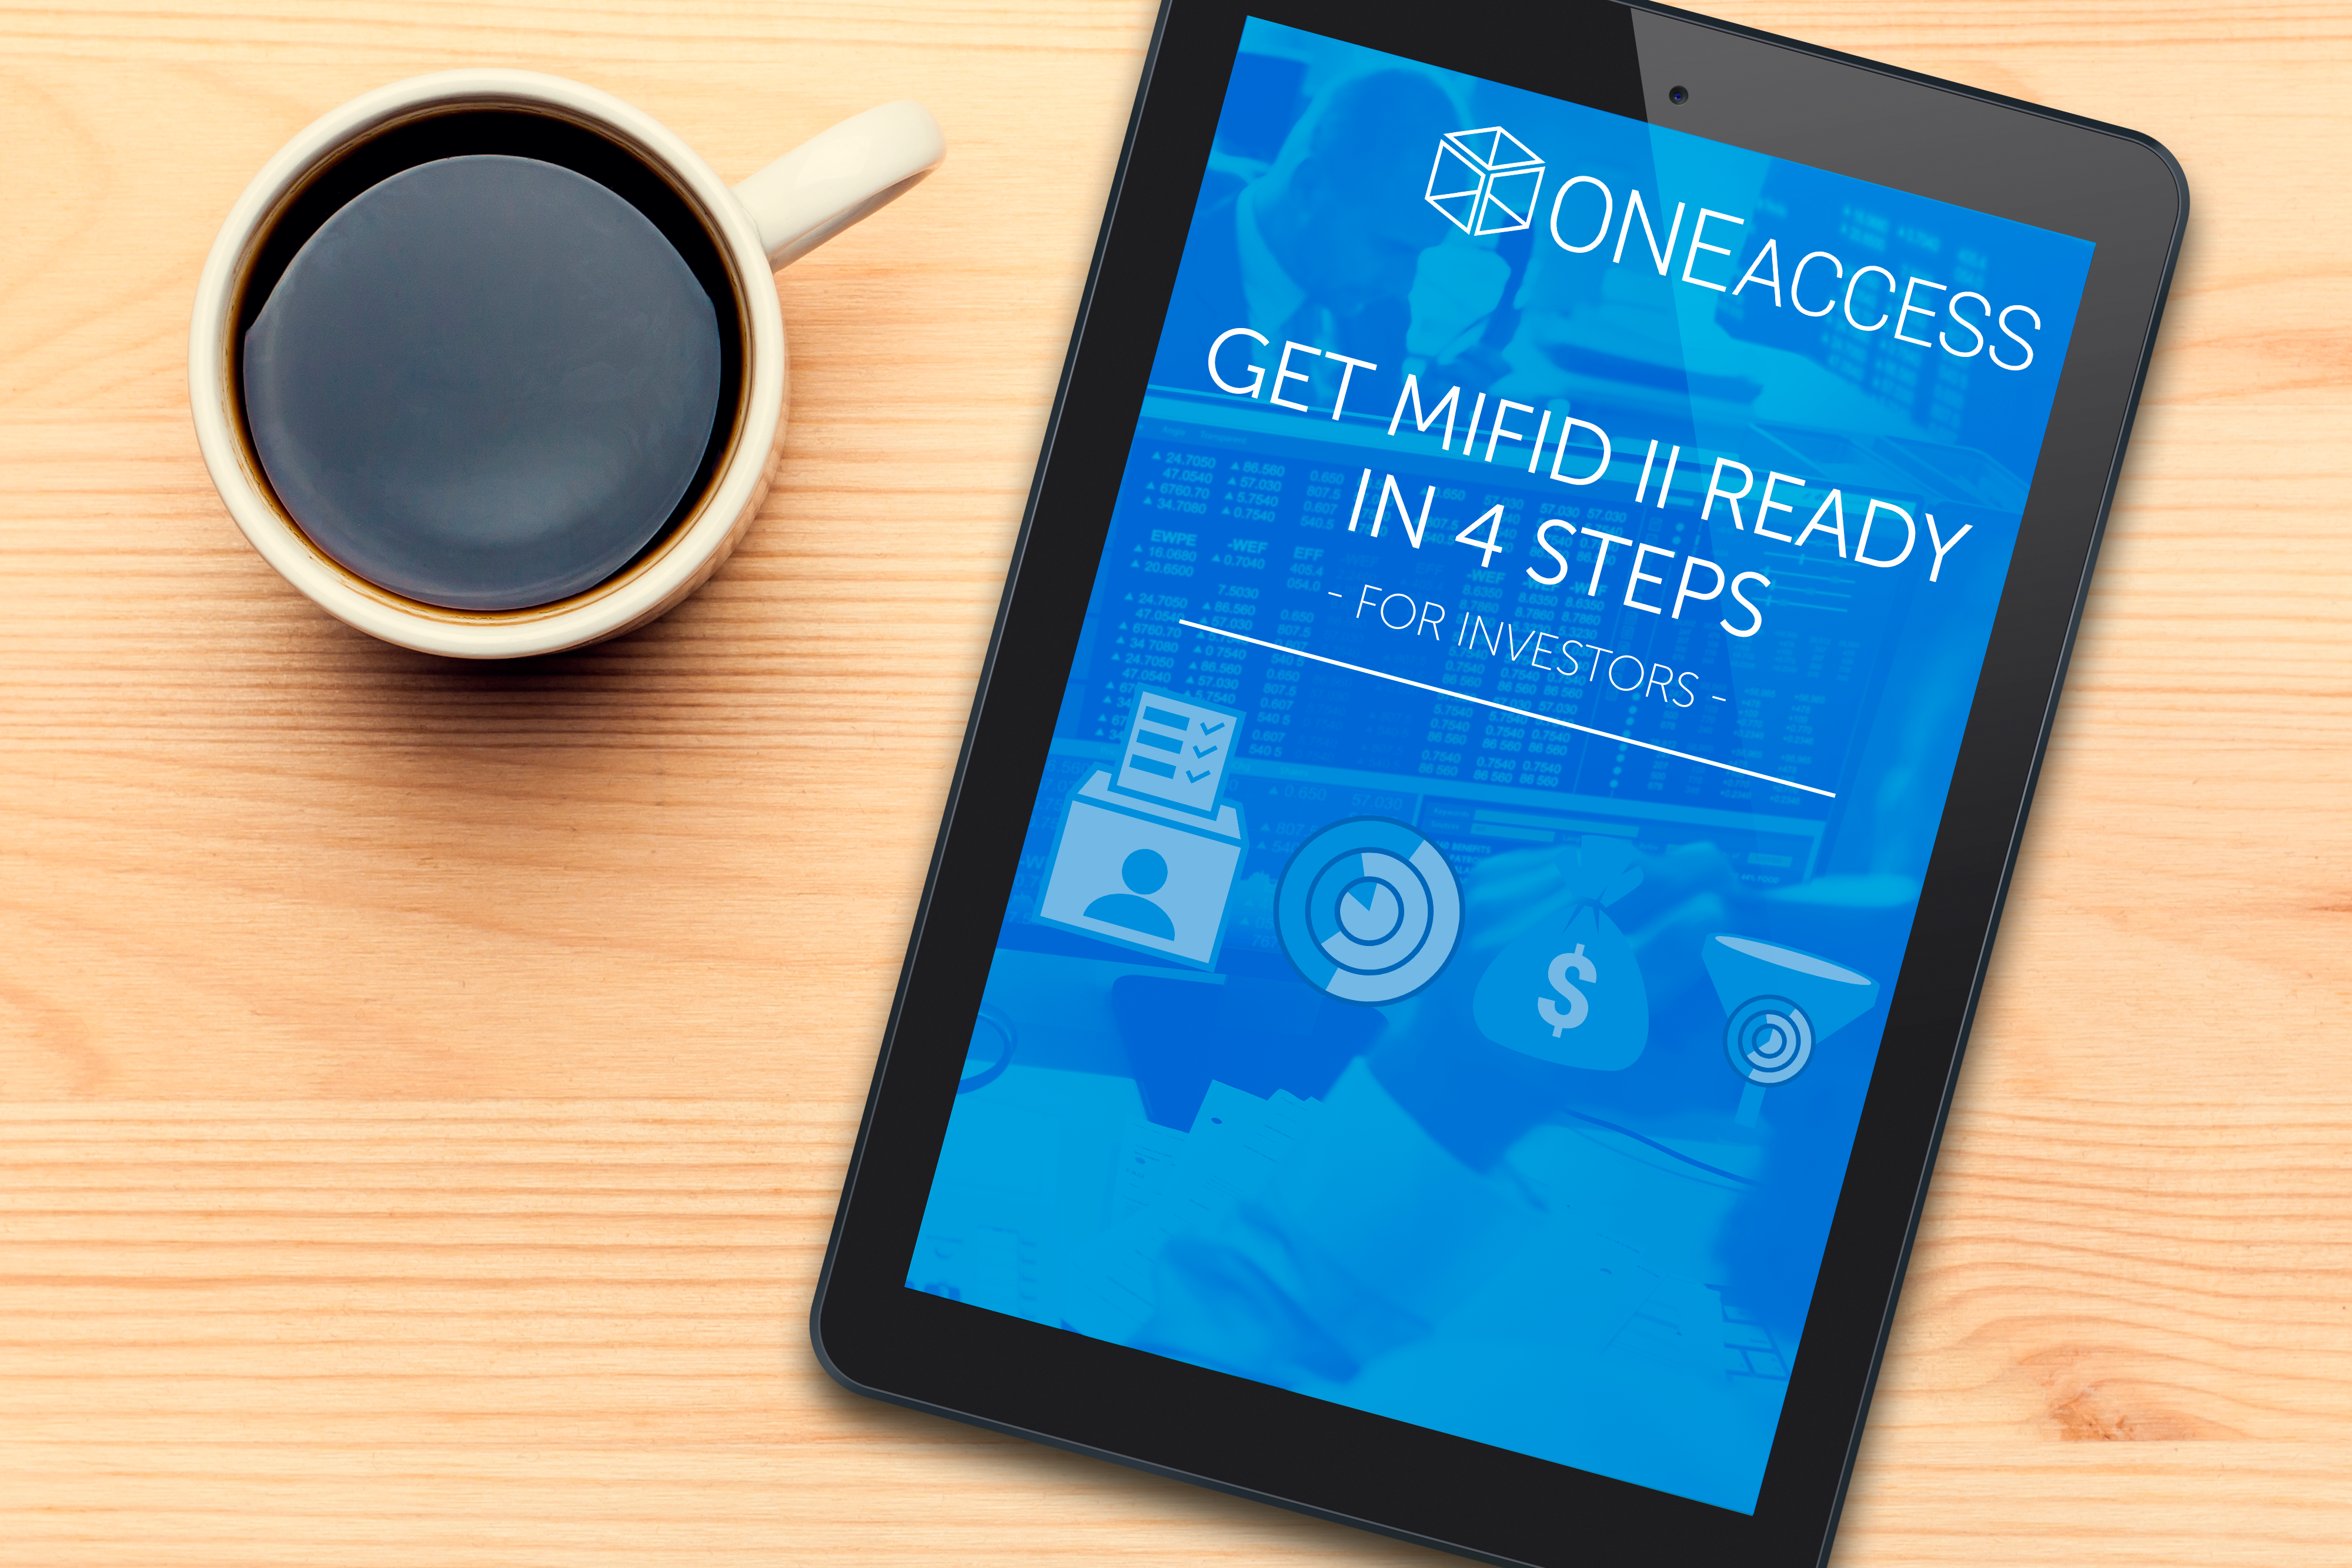 ONEaccess MiFID II Checklist - Get It Now.png